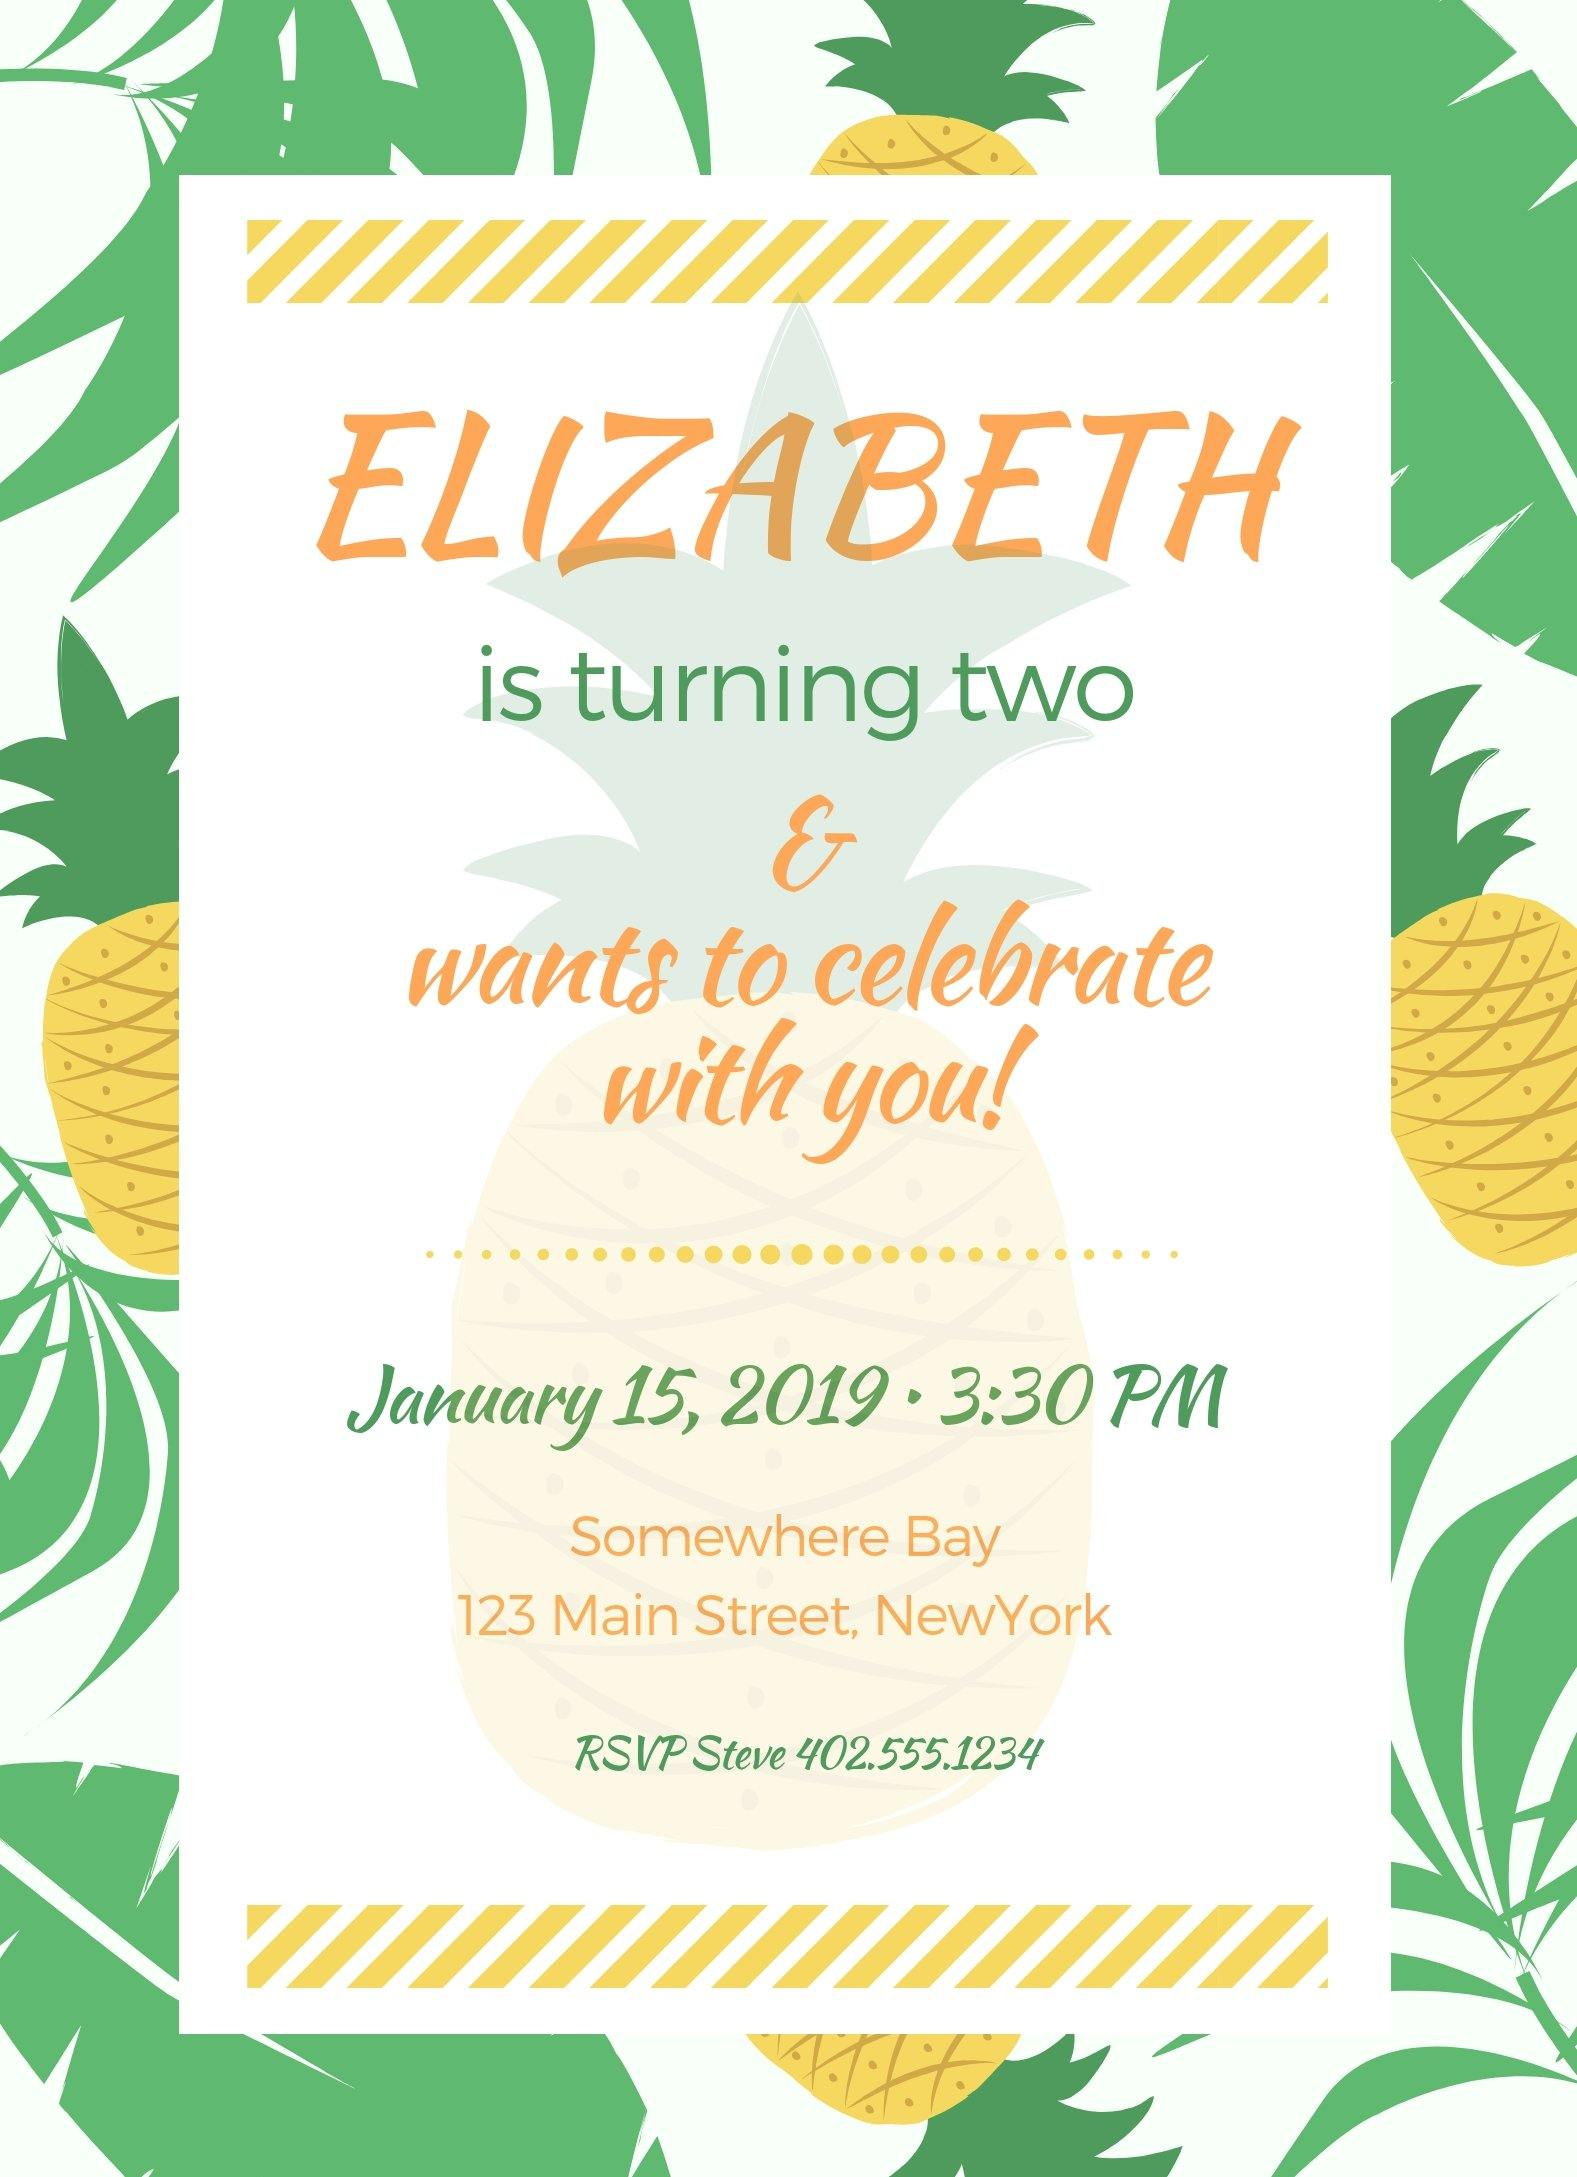 Pineapple Birthday Party Invitation Editable Download - Sunny Jar Designs